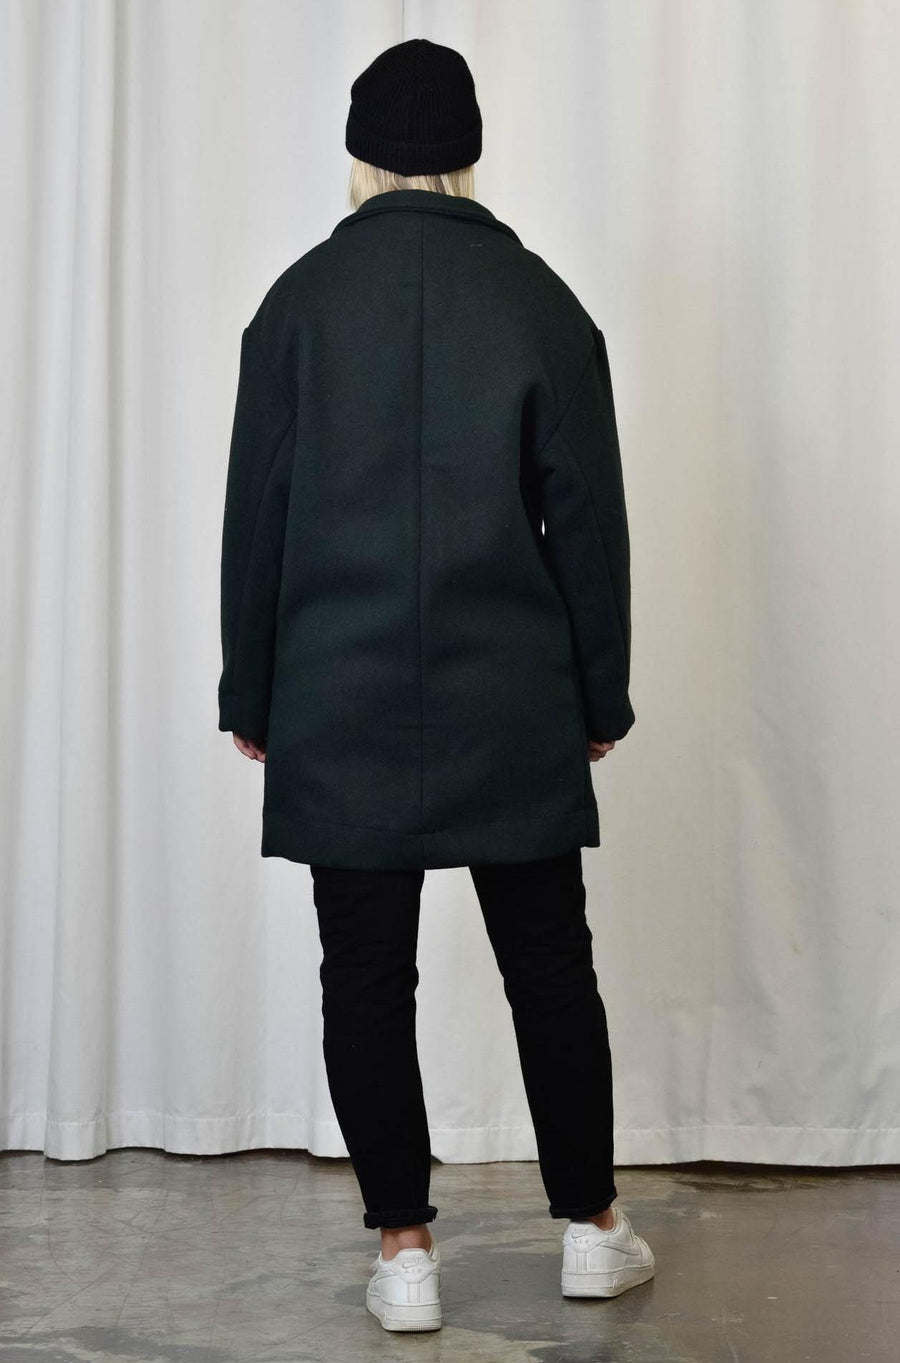 Unisex Coat in Green - Artclub and Friends